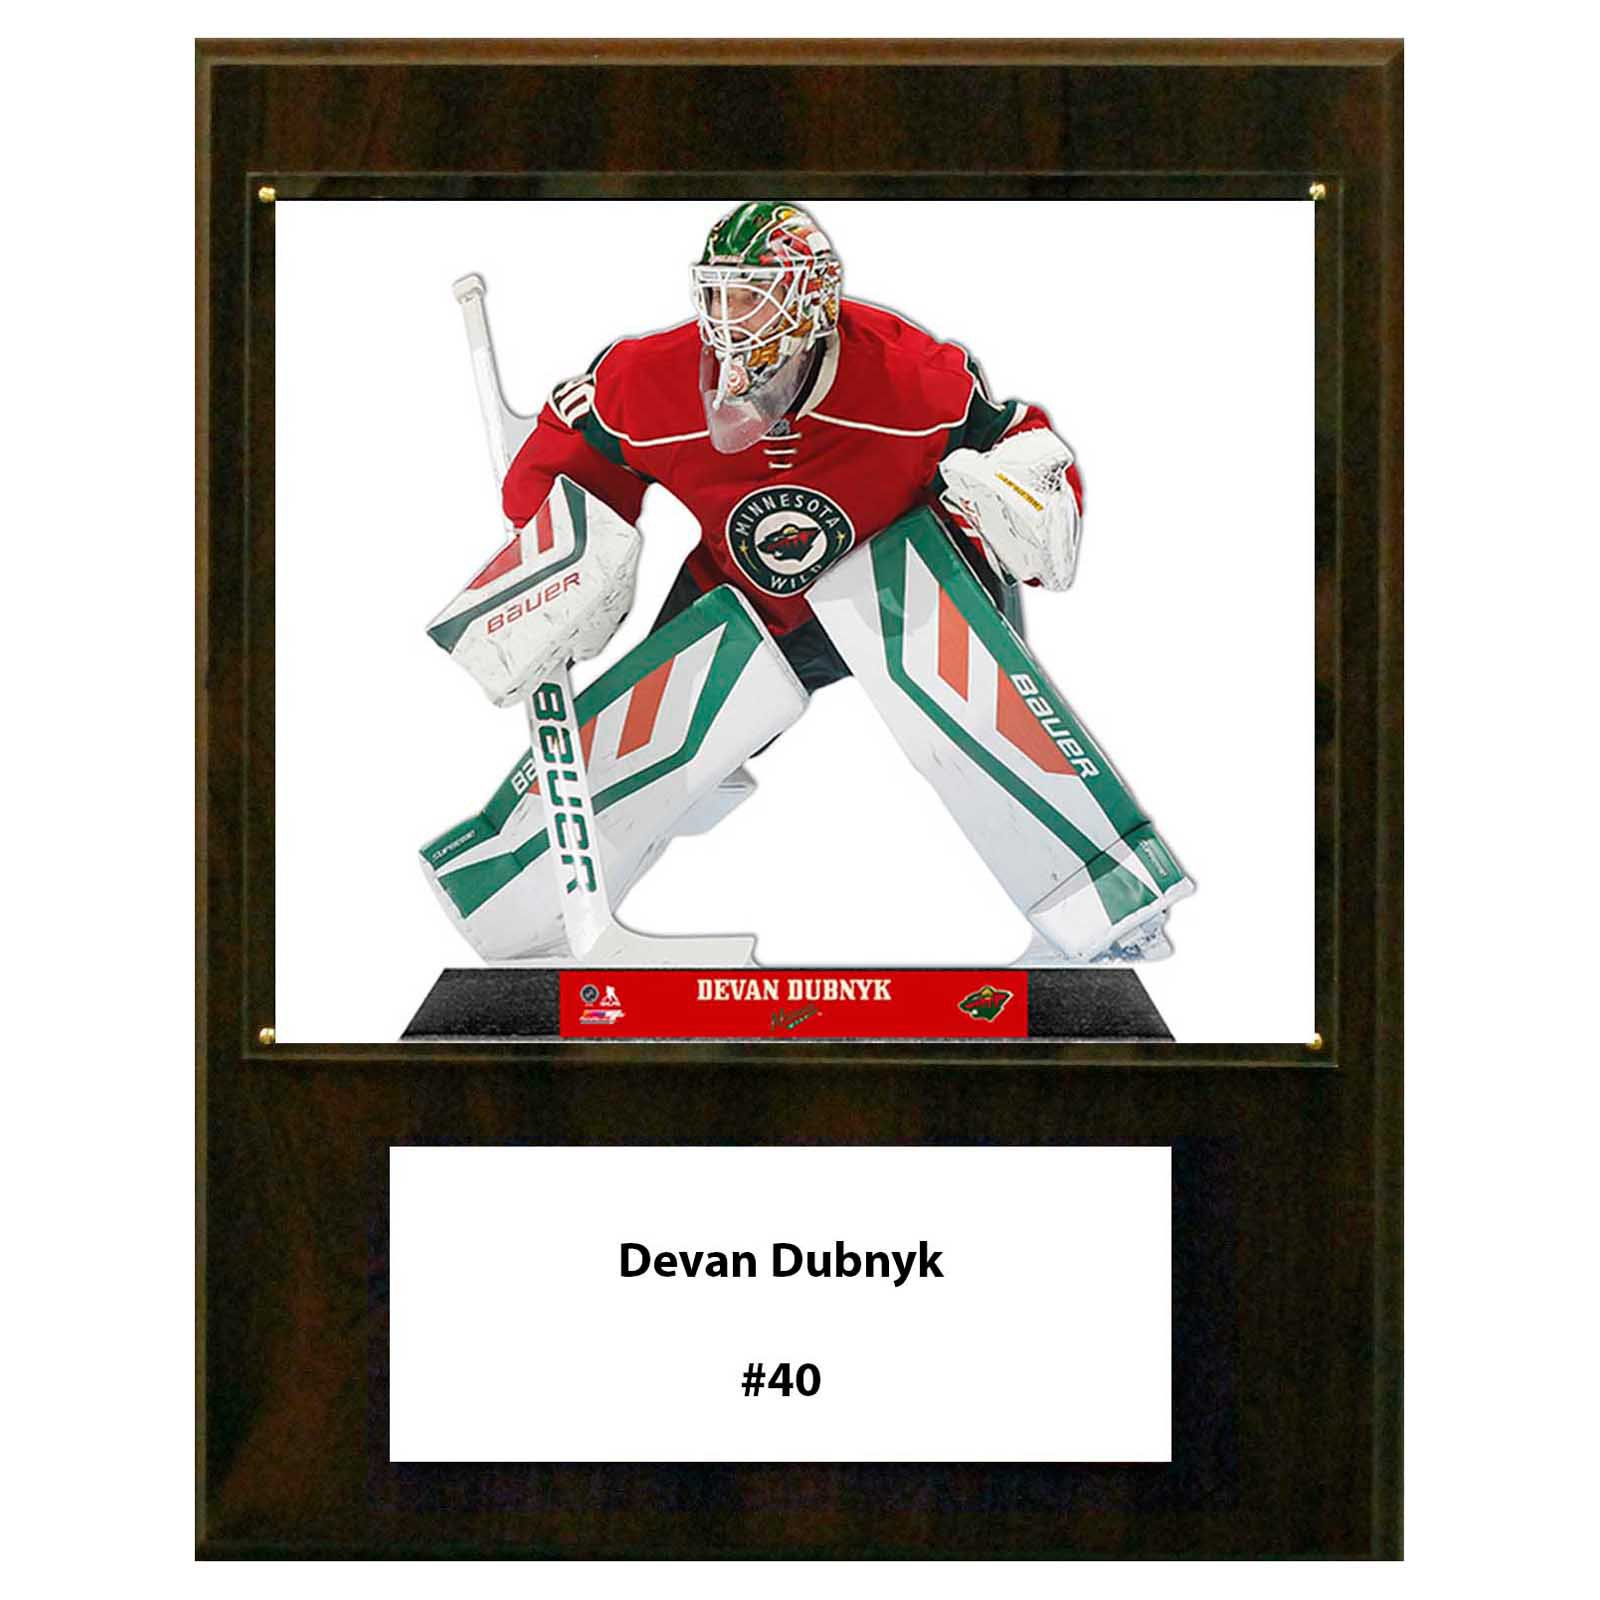 C&I Collectables NHL 12x15 Devan Dubnyk Minnesota Wild Player Plaque